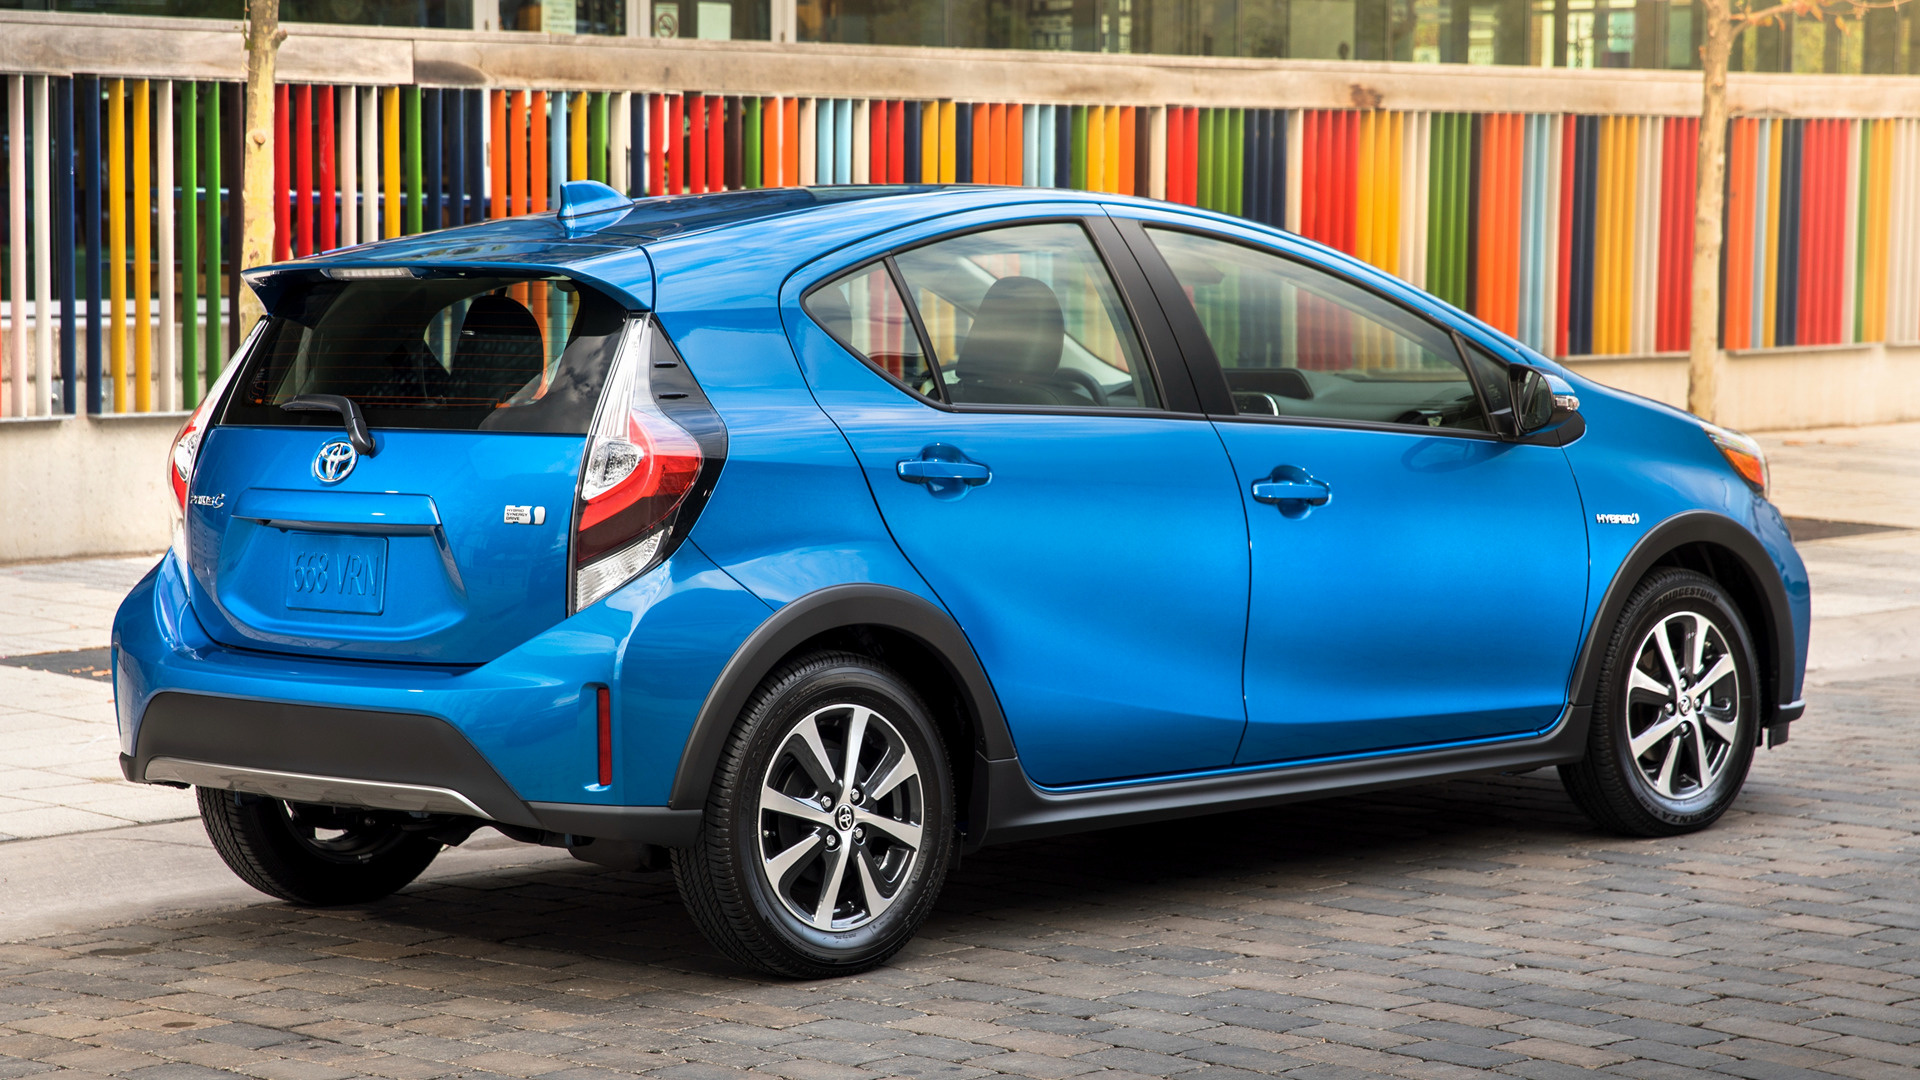 Toyota Prius c (2018) Wallpapers and HD Images - Car Pixel